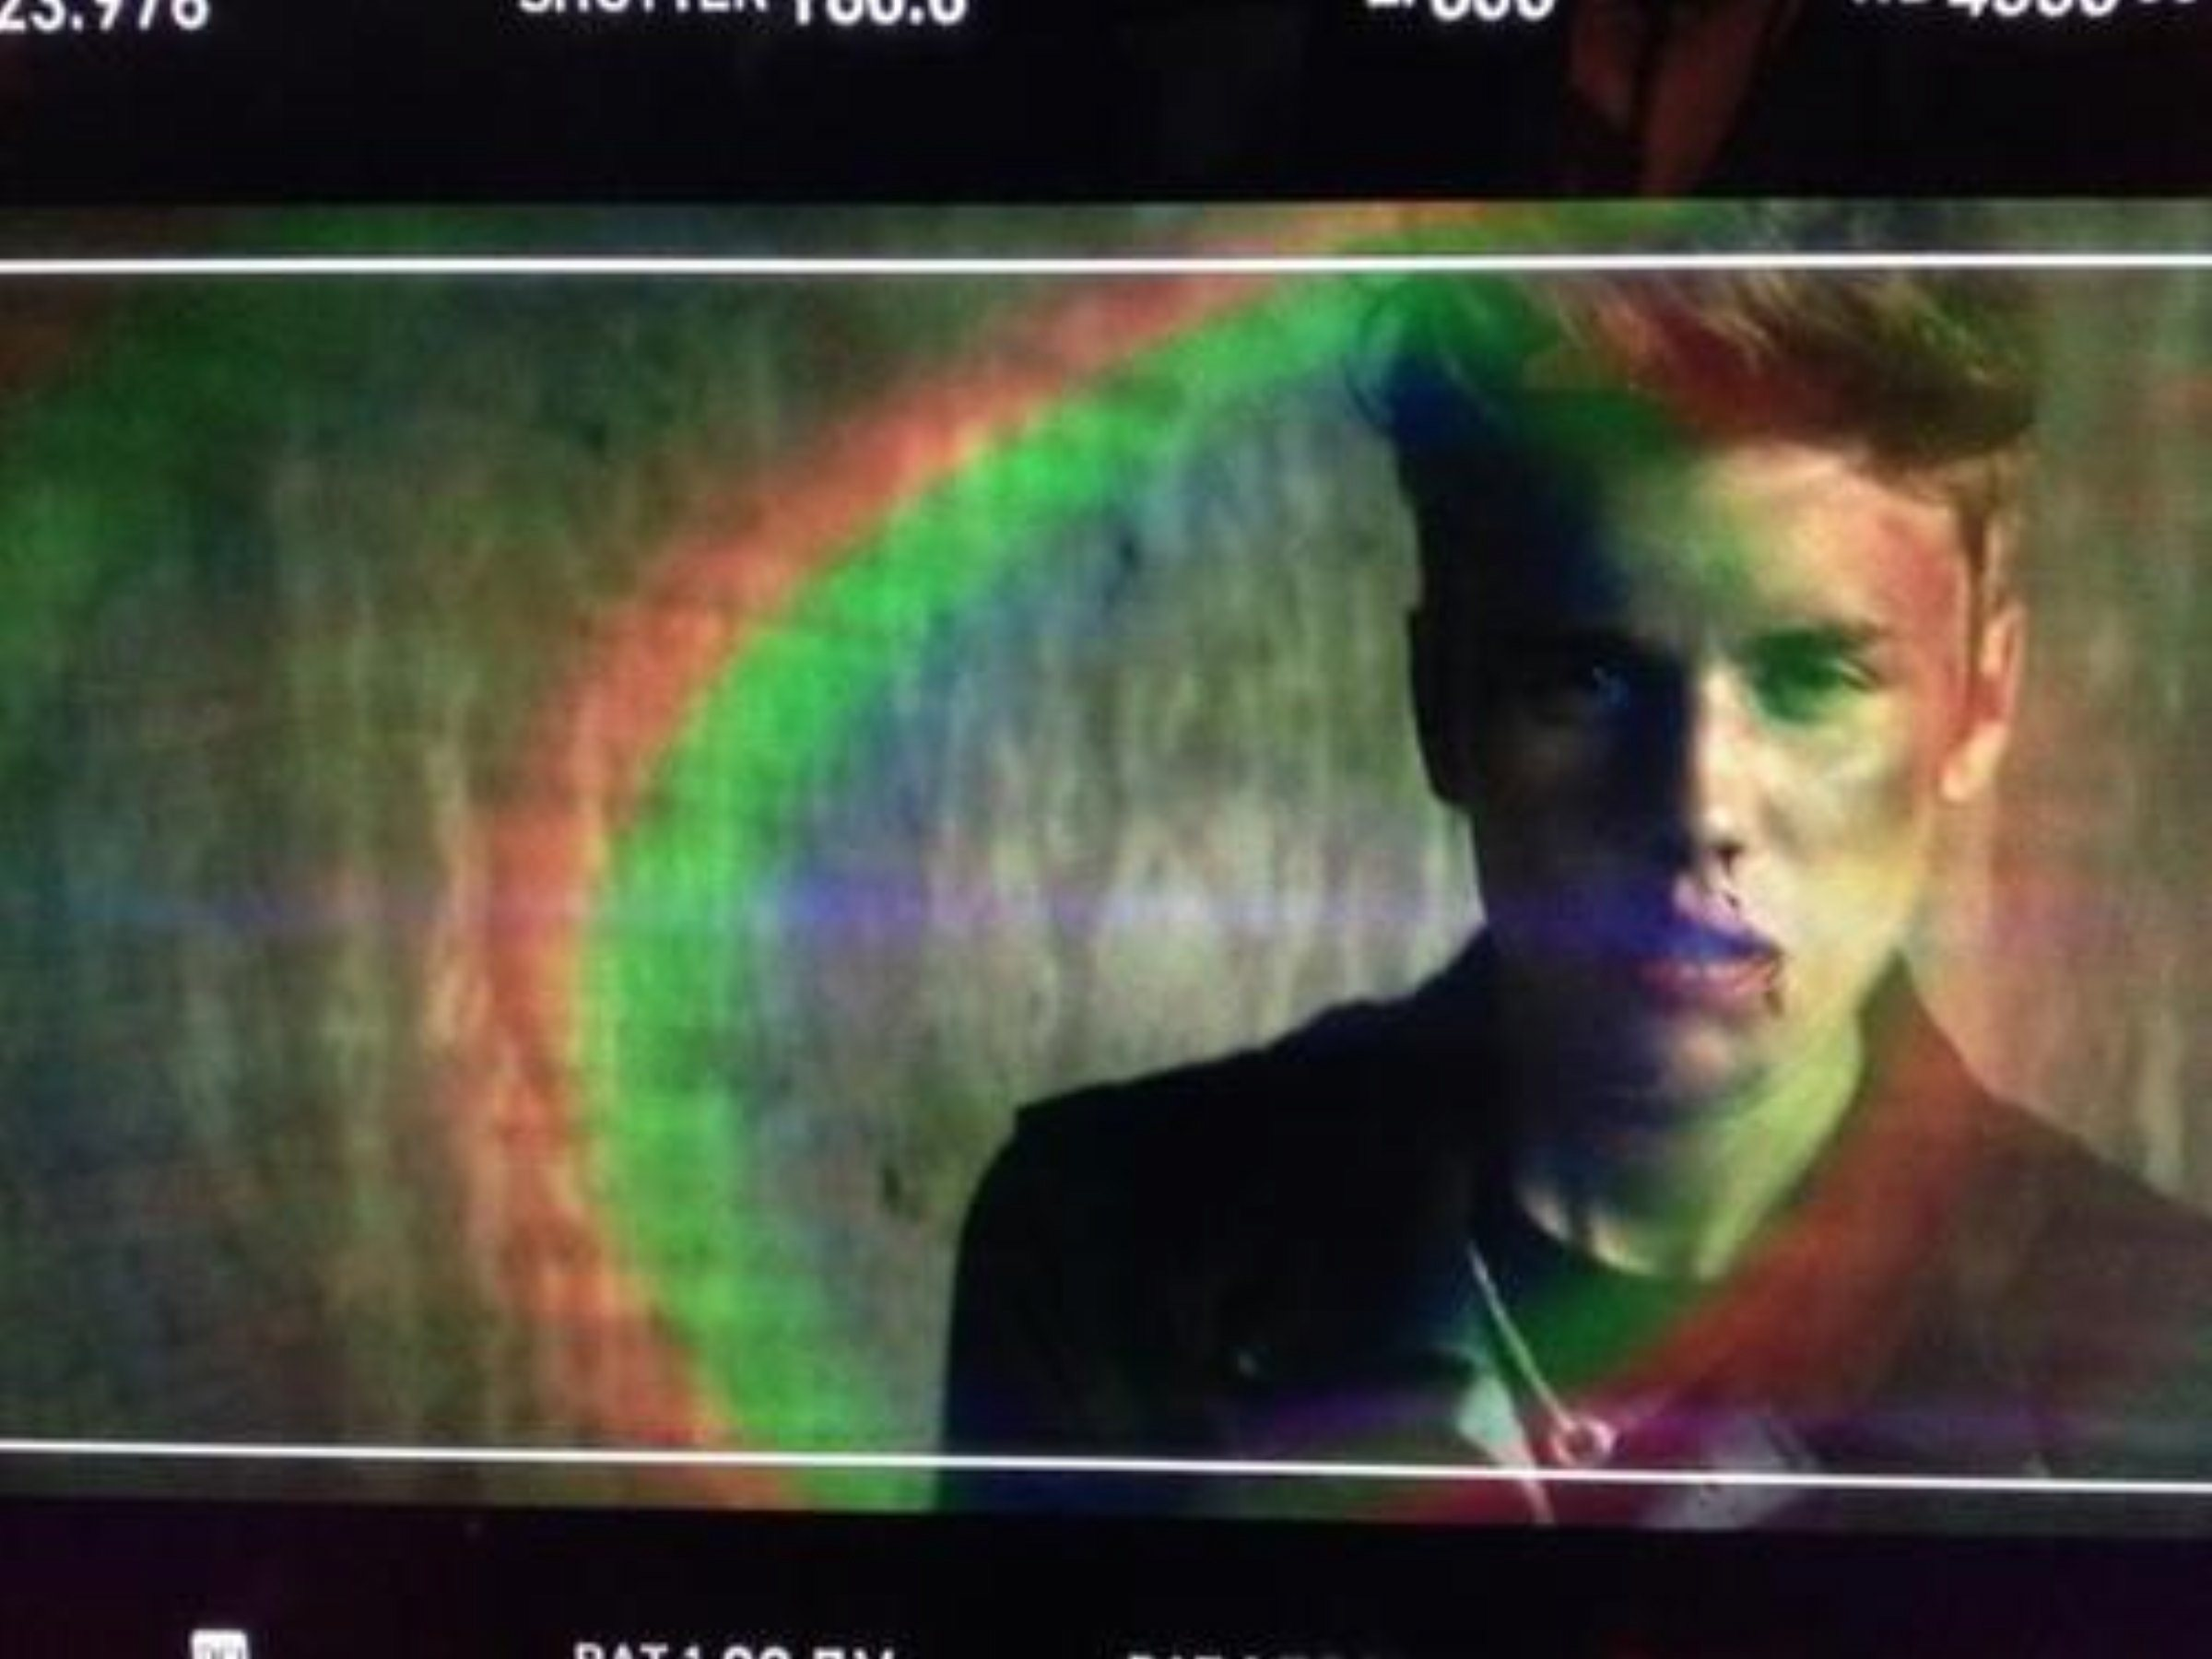 justin bieber, as long as you love me, music video, 2012